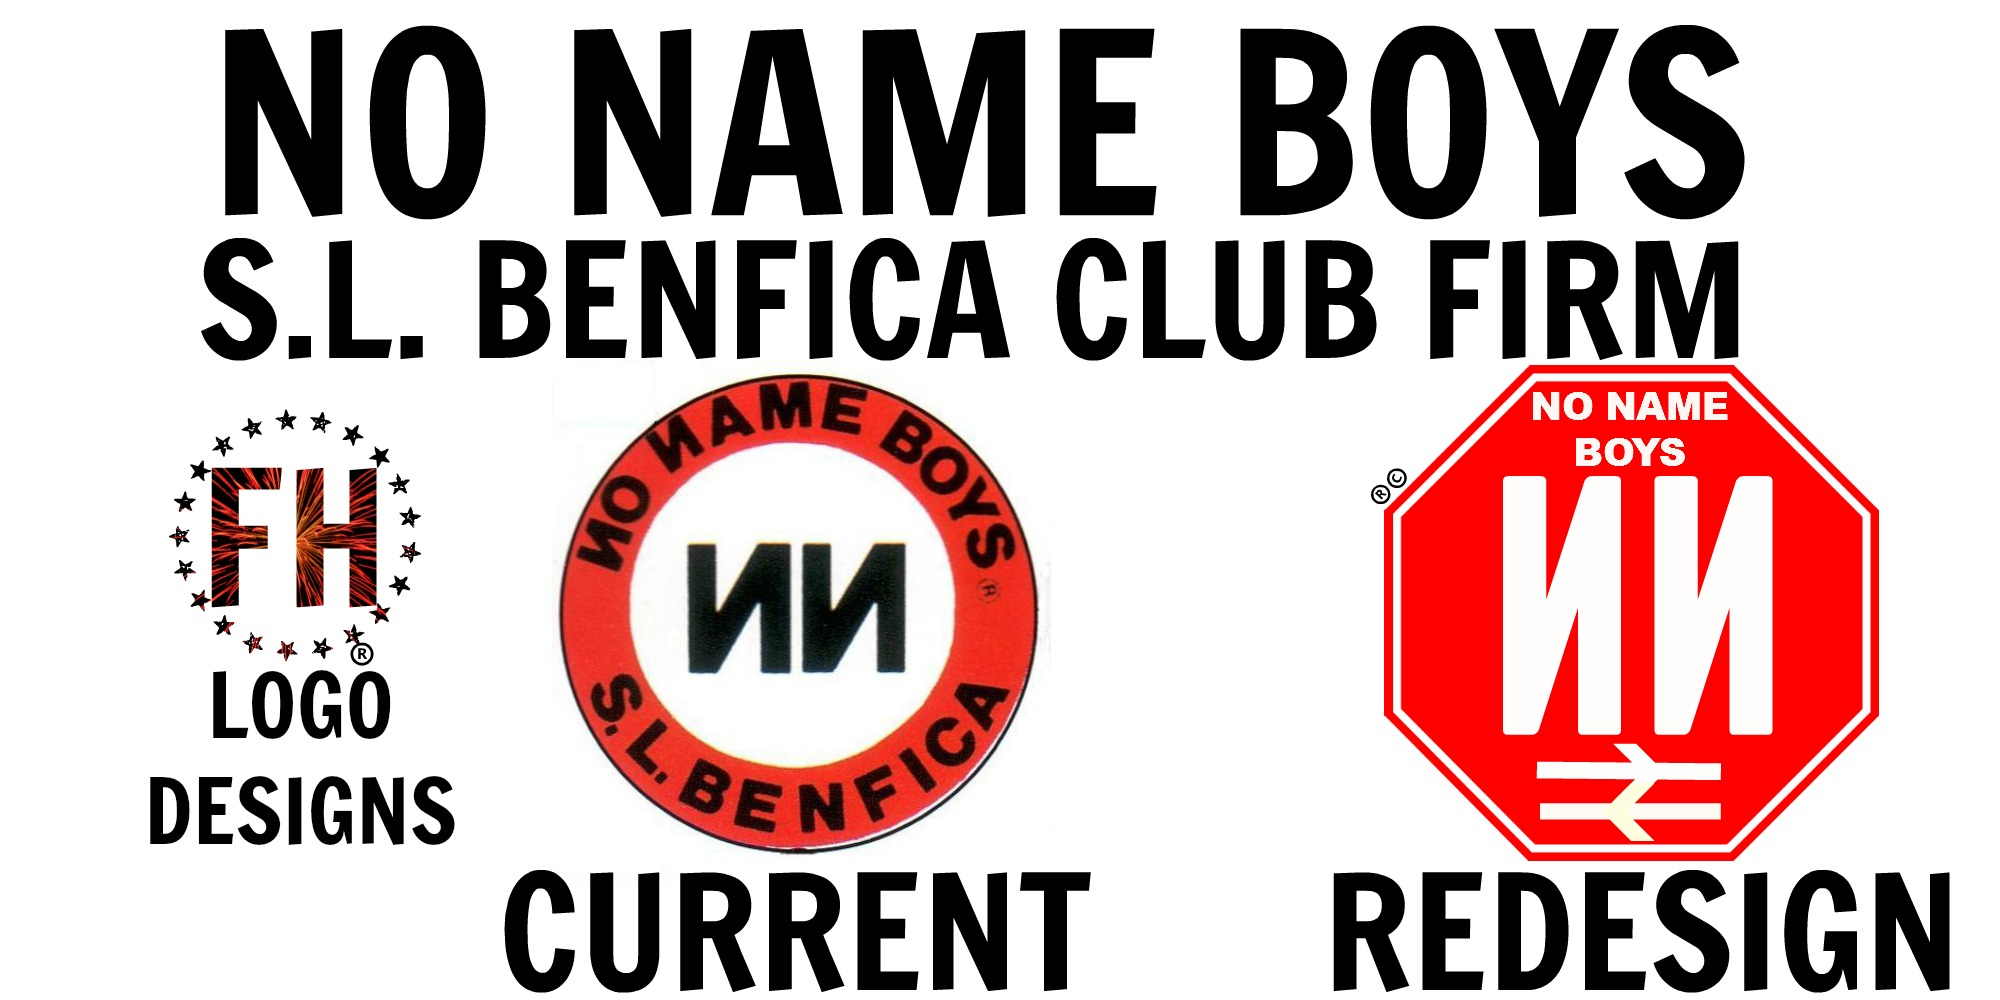 No Name Boys (SLB Club Firm) New Crest Idea